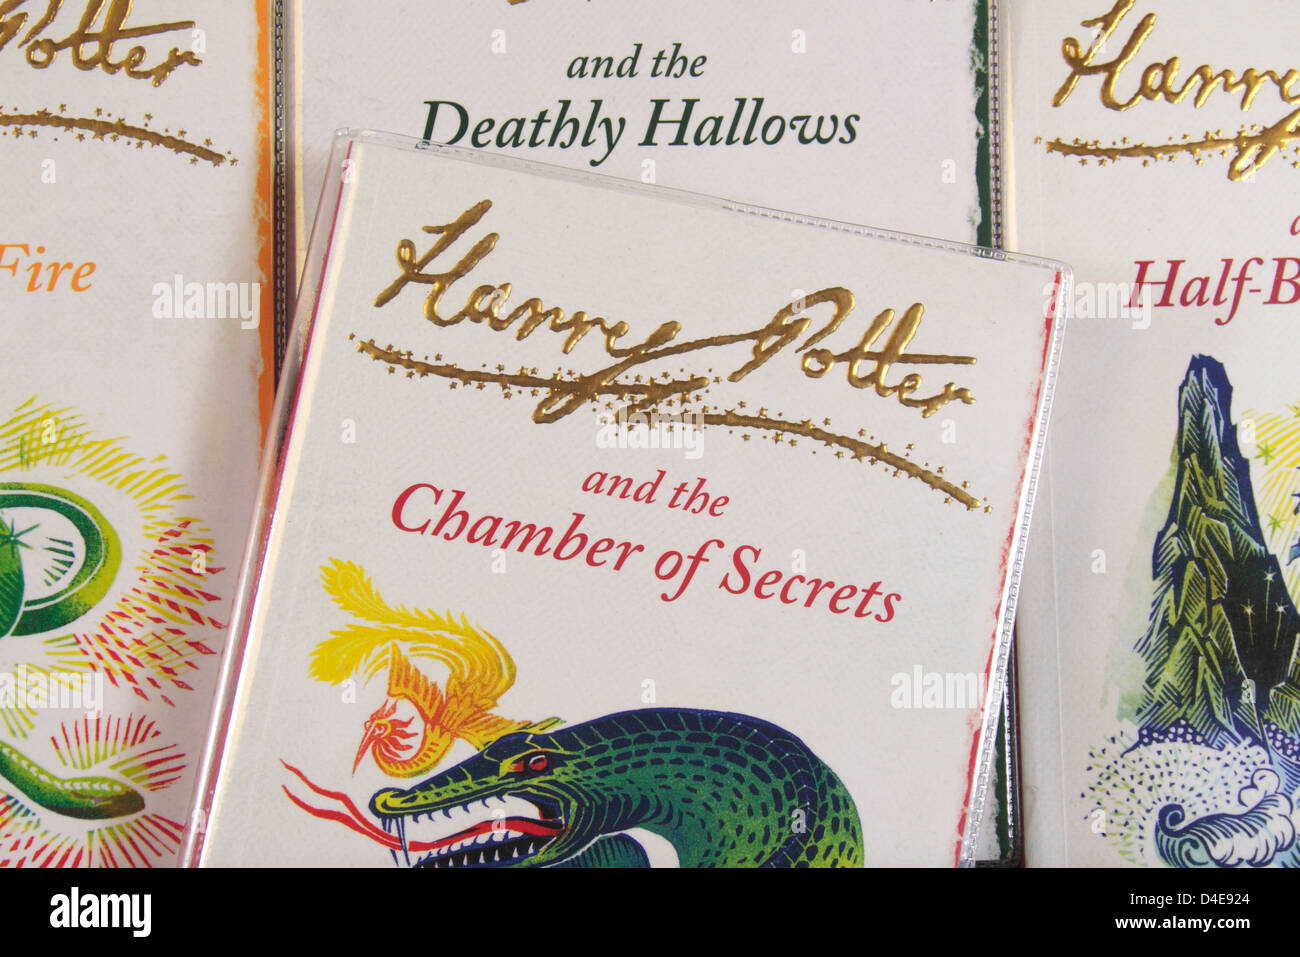 The book cover of 'Harry Potter and the Chamber of Secrets' by JK Rowling sitting on other books in the - Stock Image